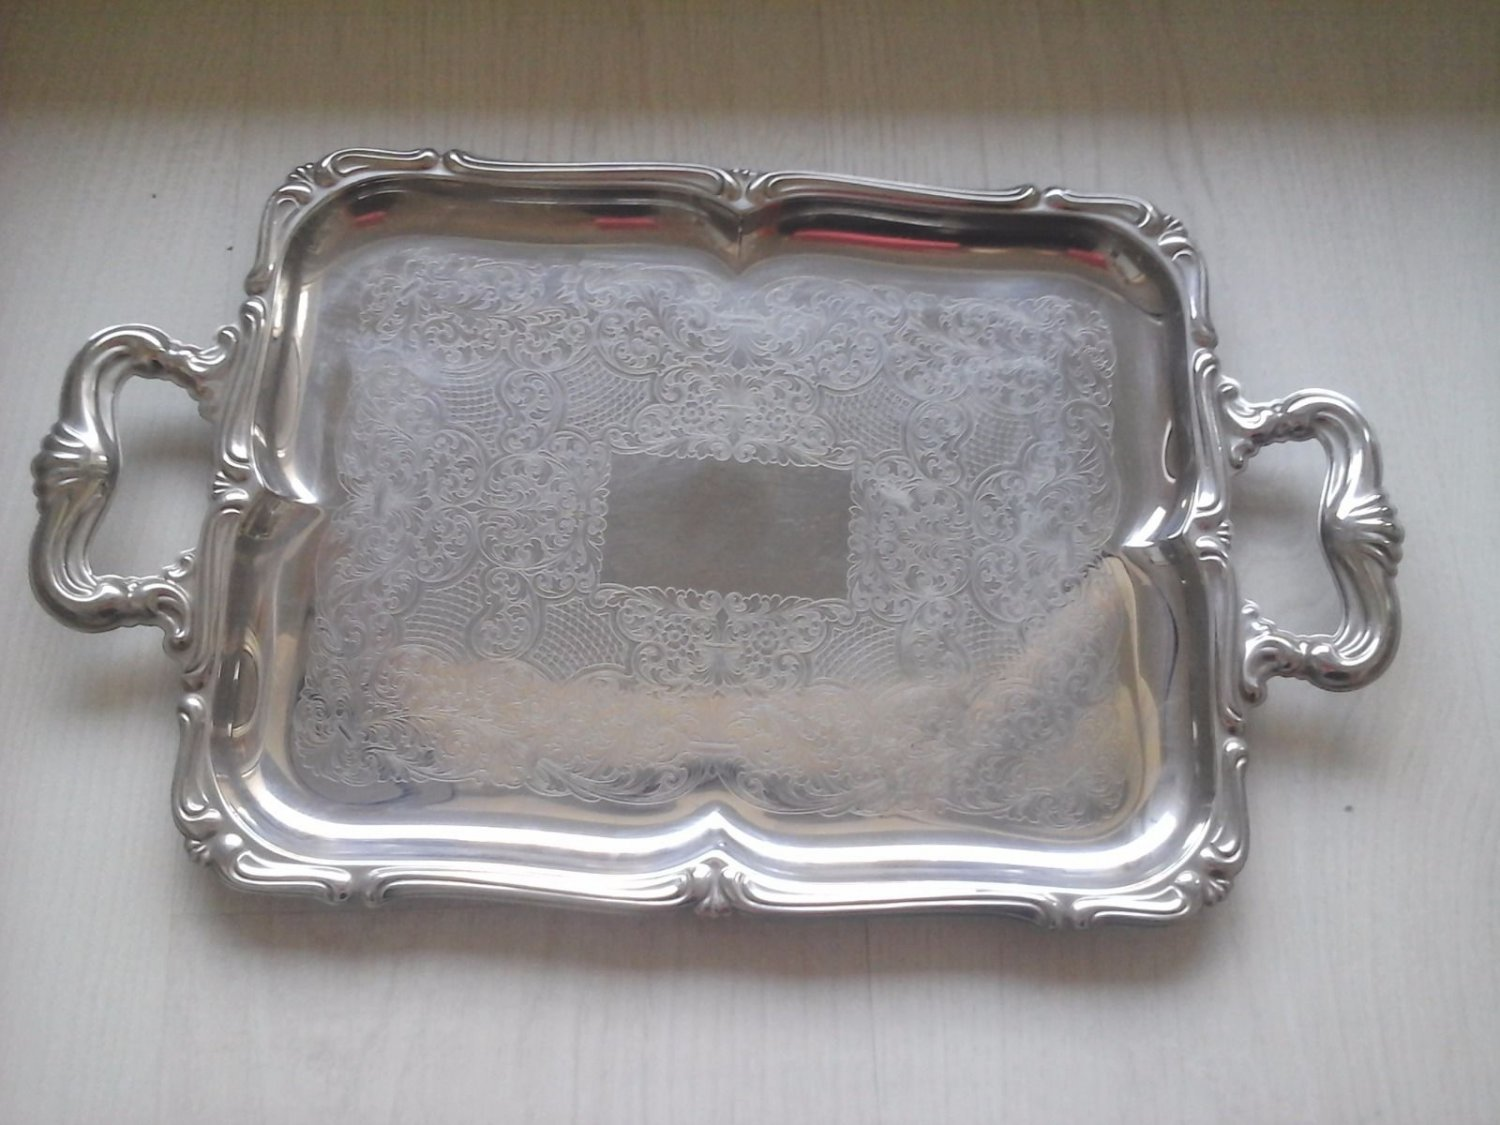 ALESSI TRAY WITH FLOWERS IN STEEL INOX 8/10 ITALY cm 39x24 ORIGINAL